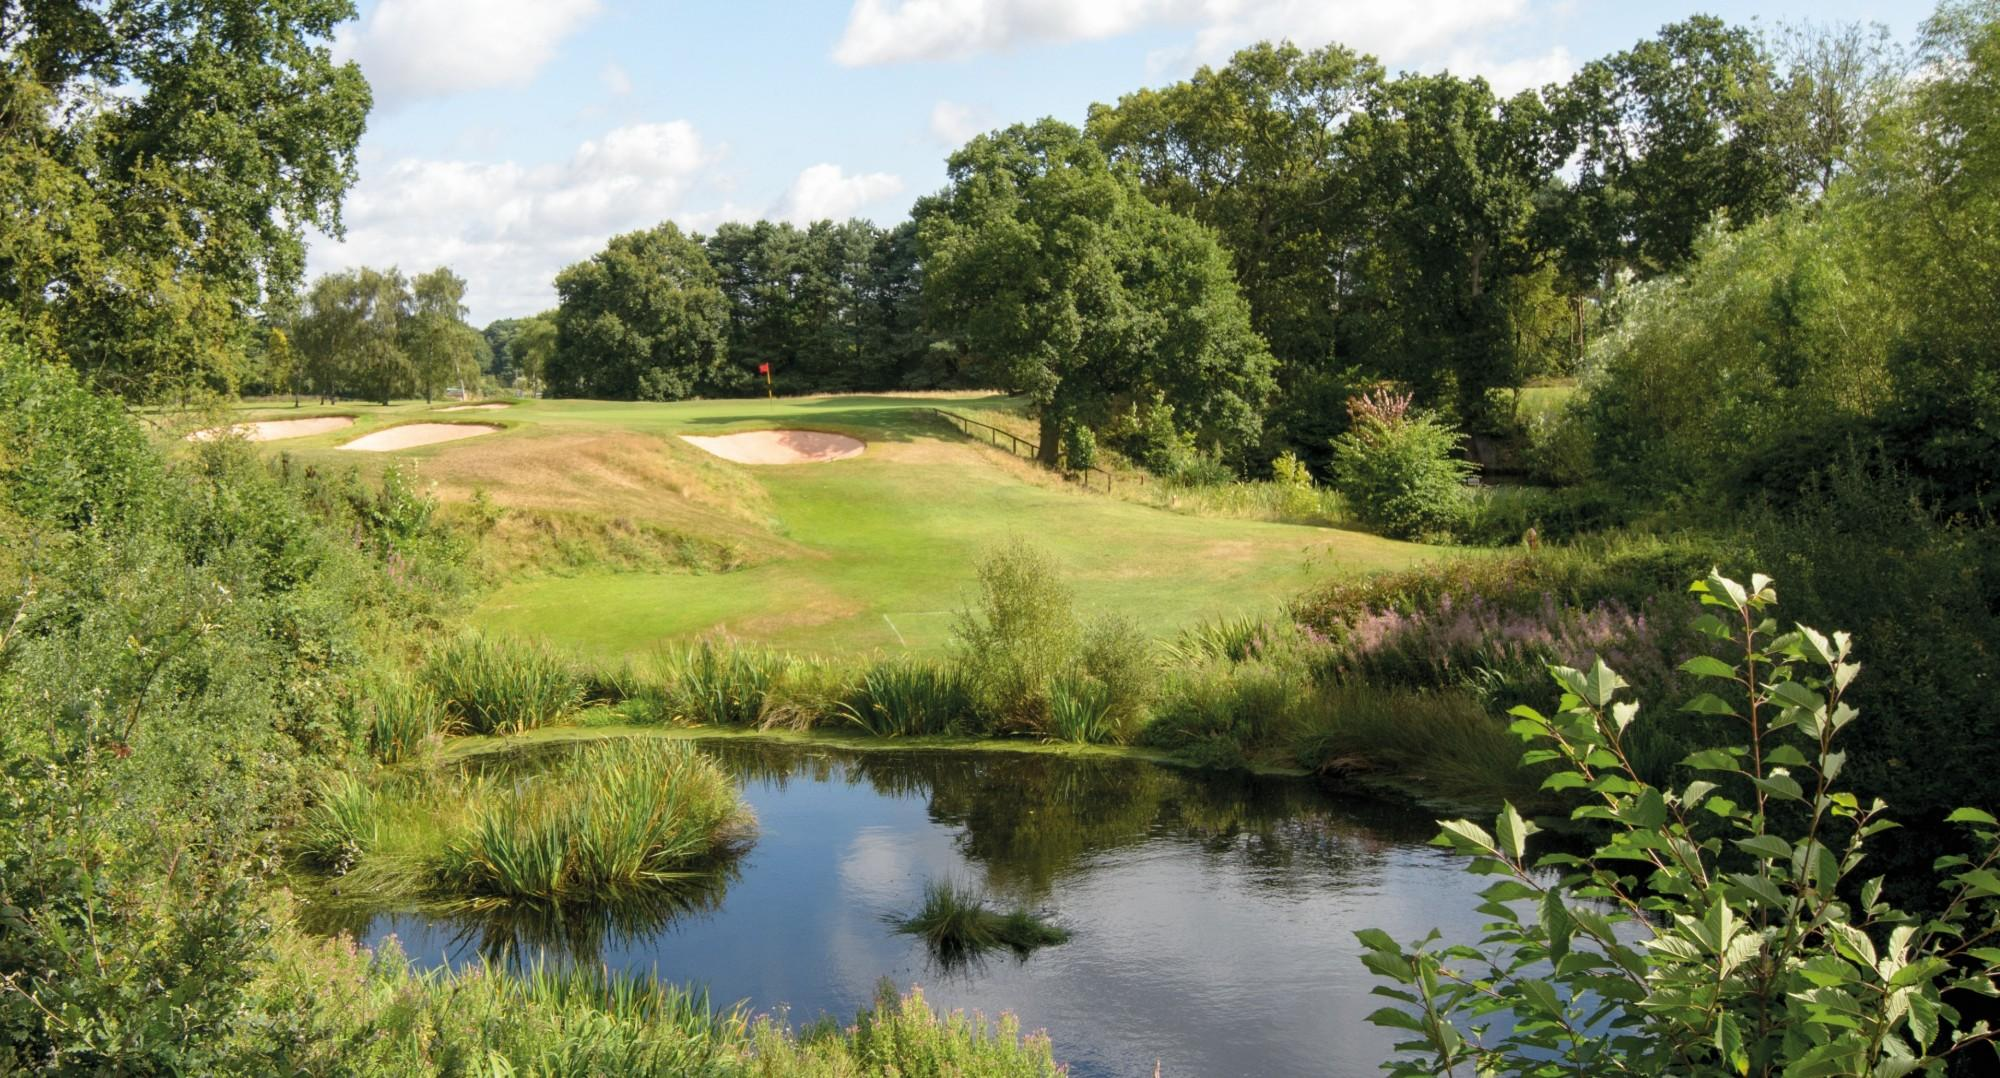 View Copt Heath Golf Club's lovely golf course in vibrant West Midlands.